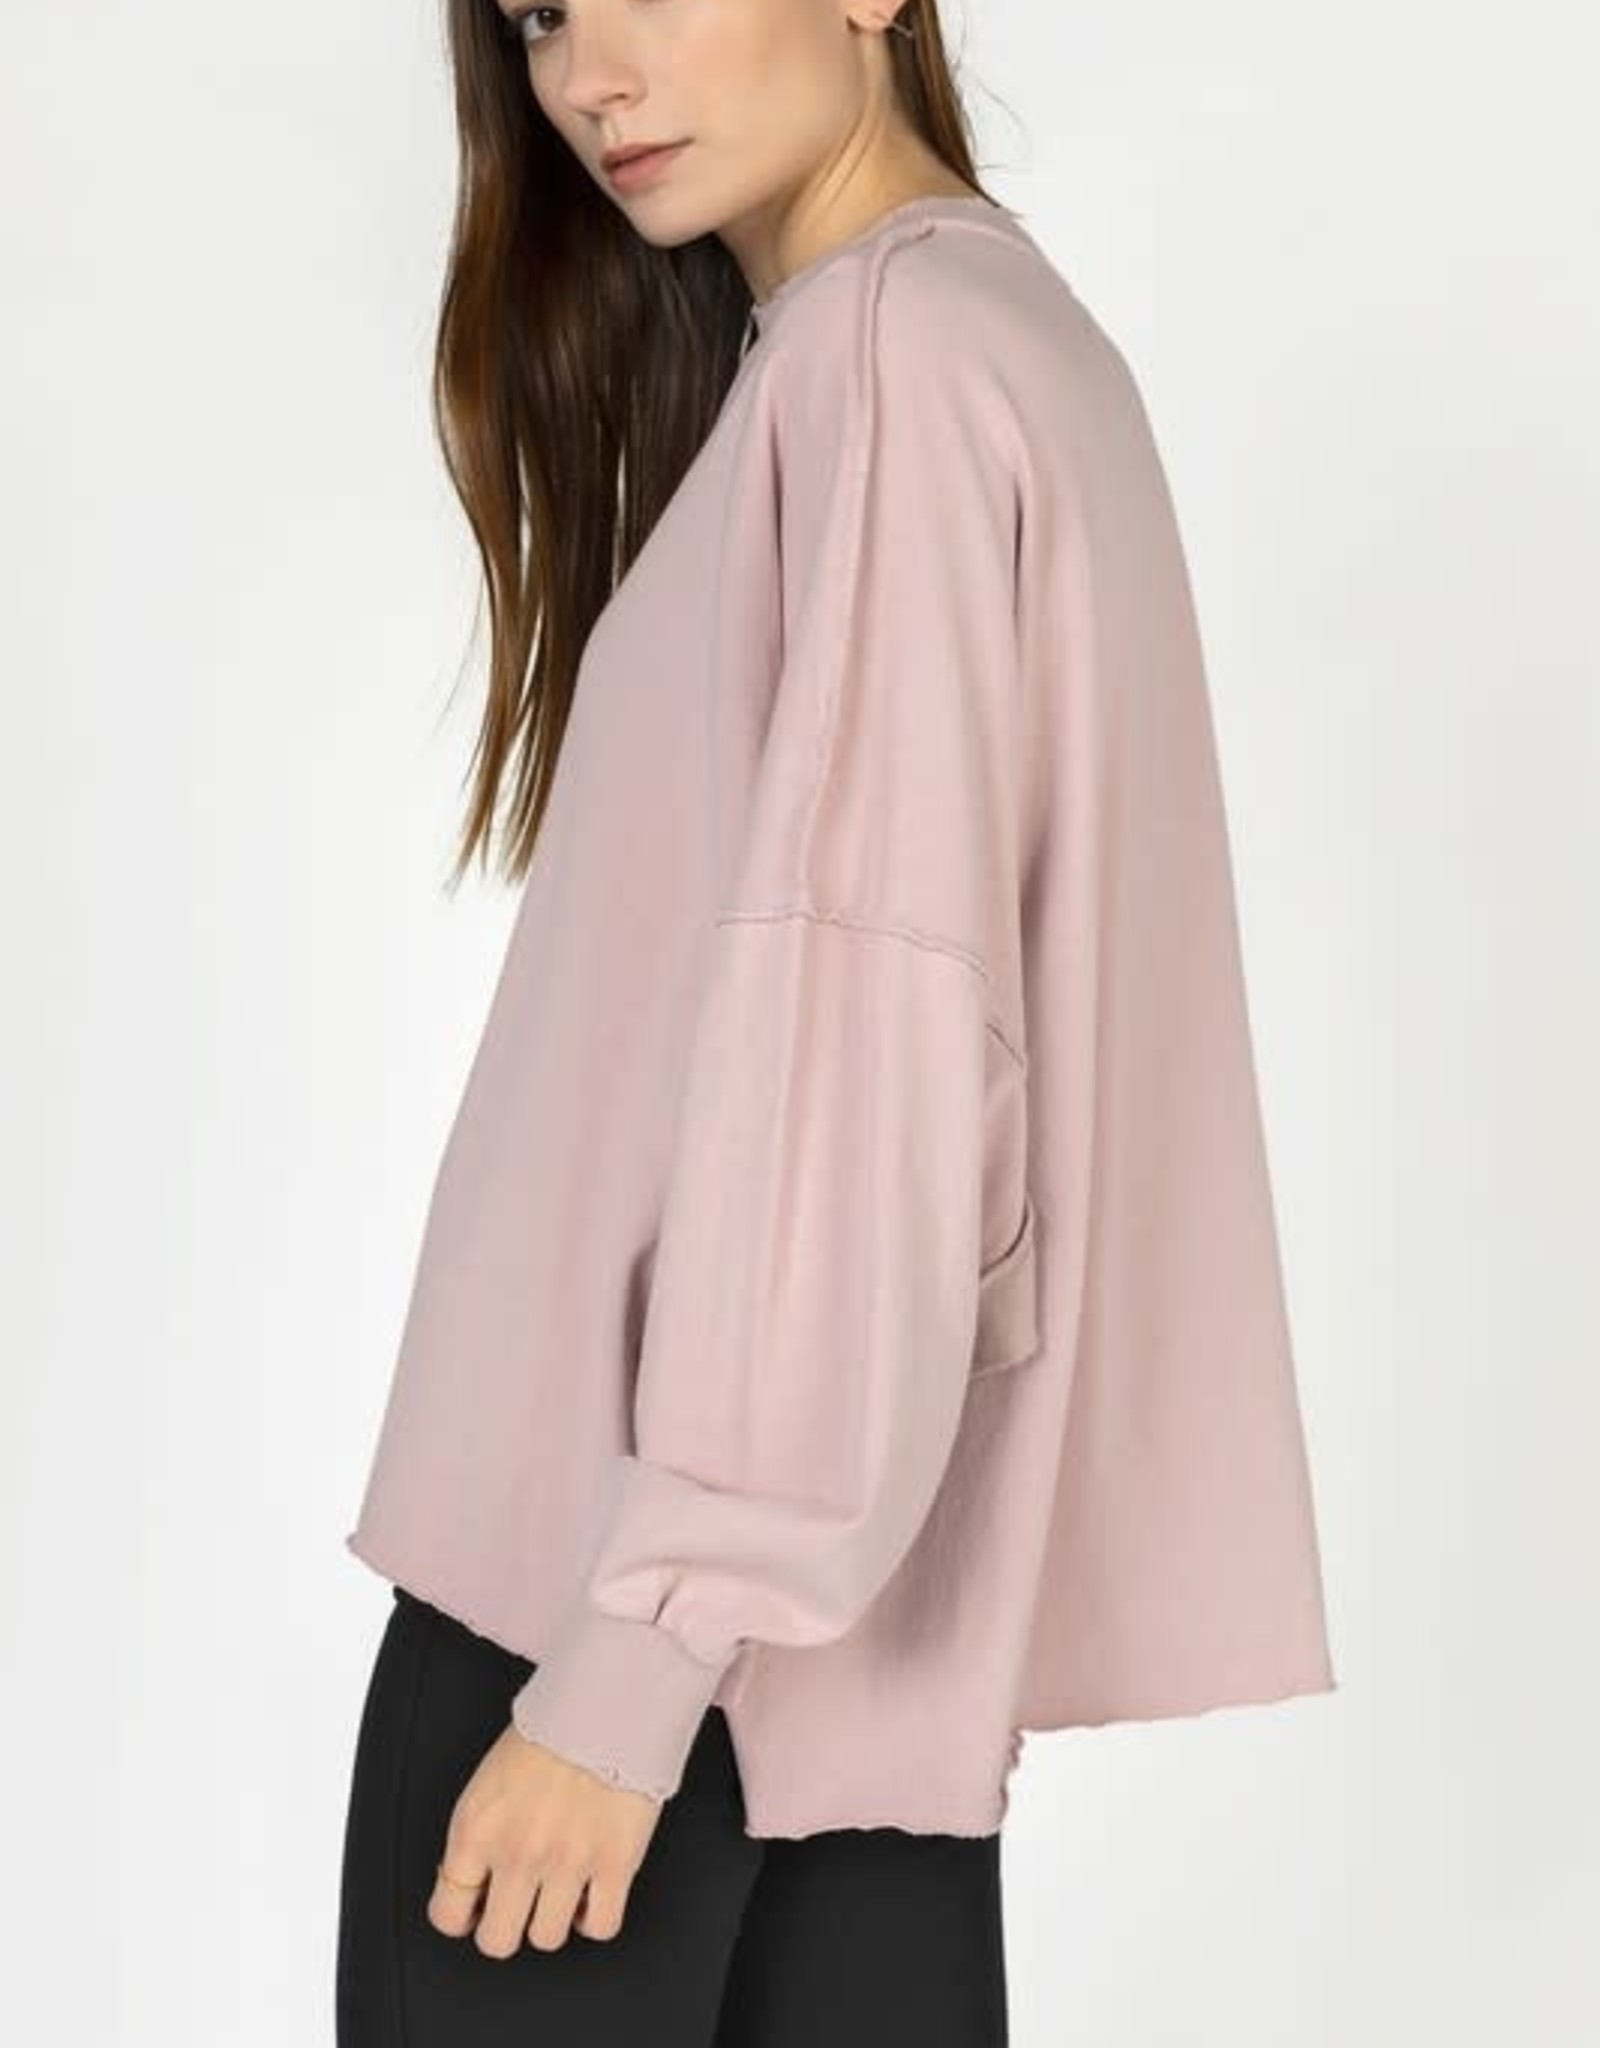 The Everson Top